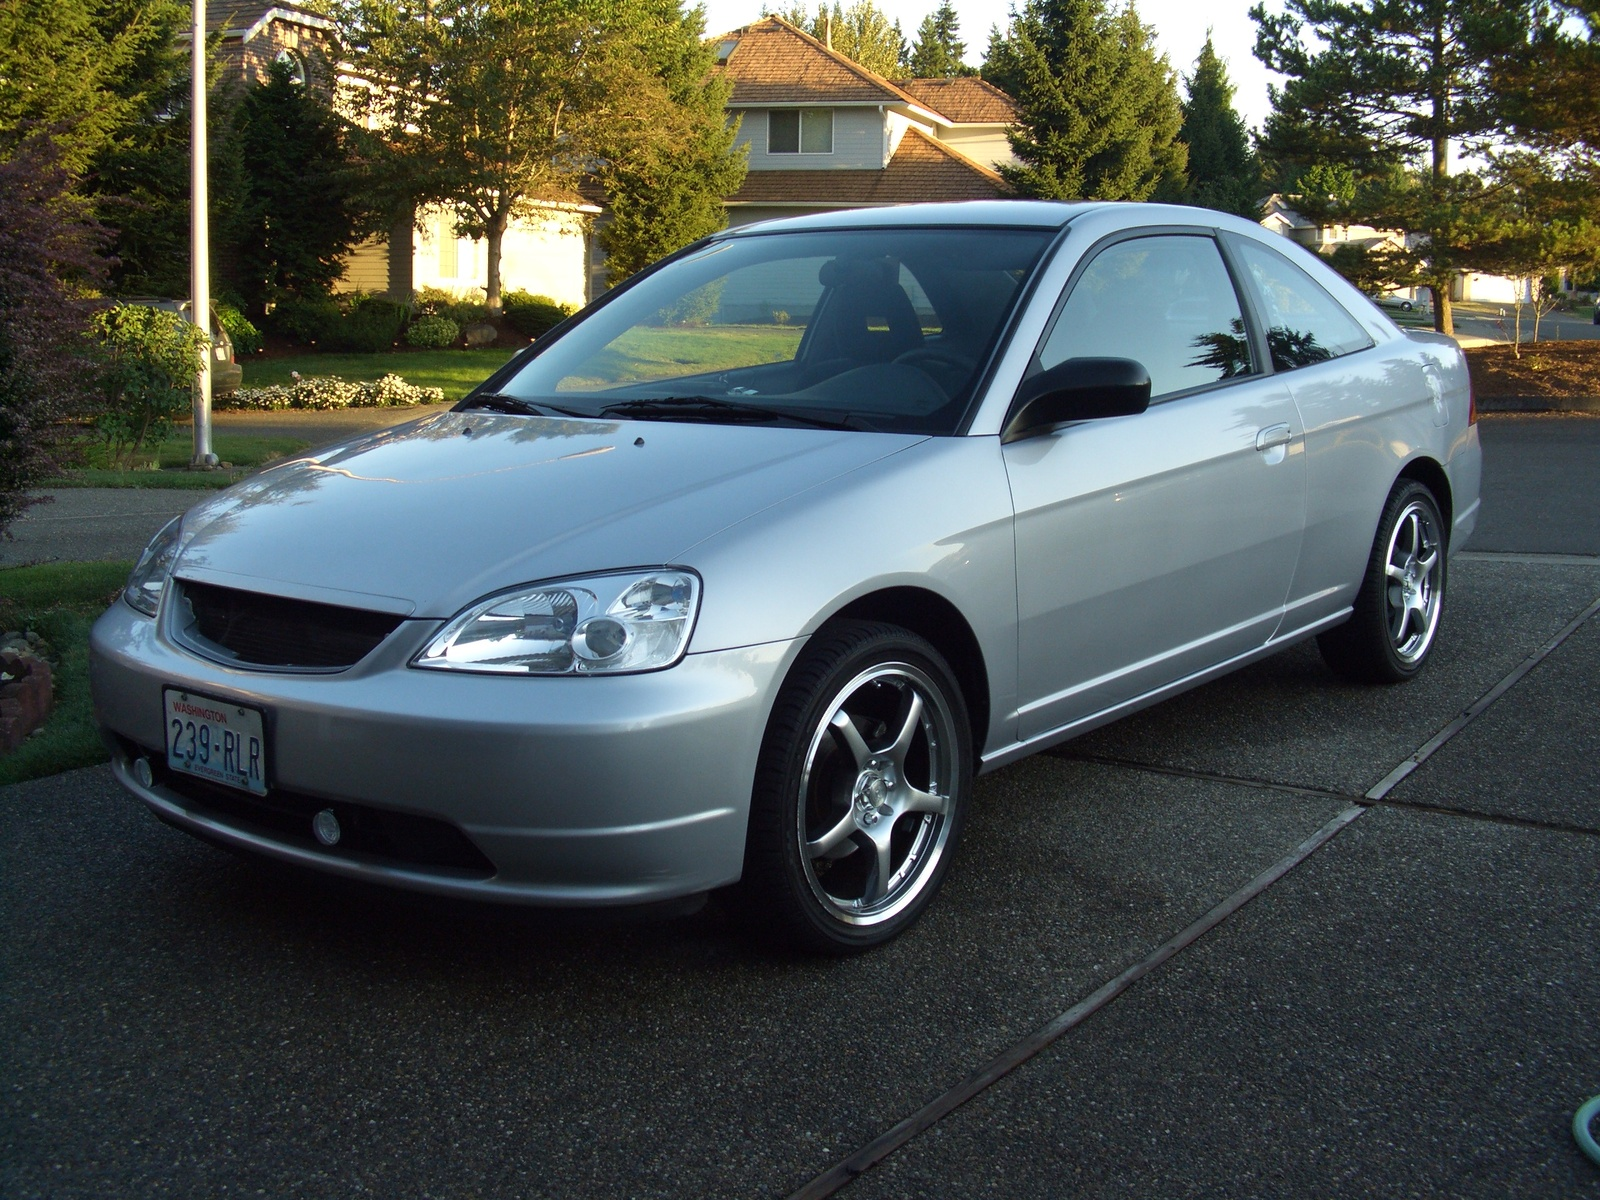 2003 honda civic lx coupe pictures to pin on pinterest pinsdaddy. Black Bedroom Furniture Sets. Home Design Ideas